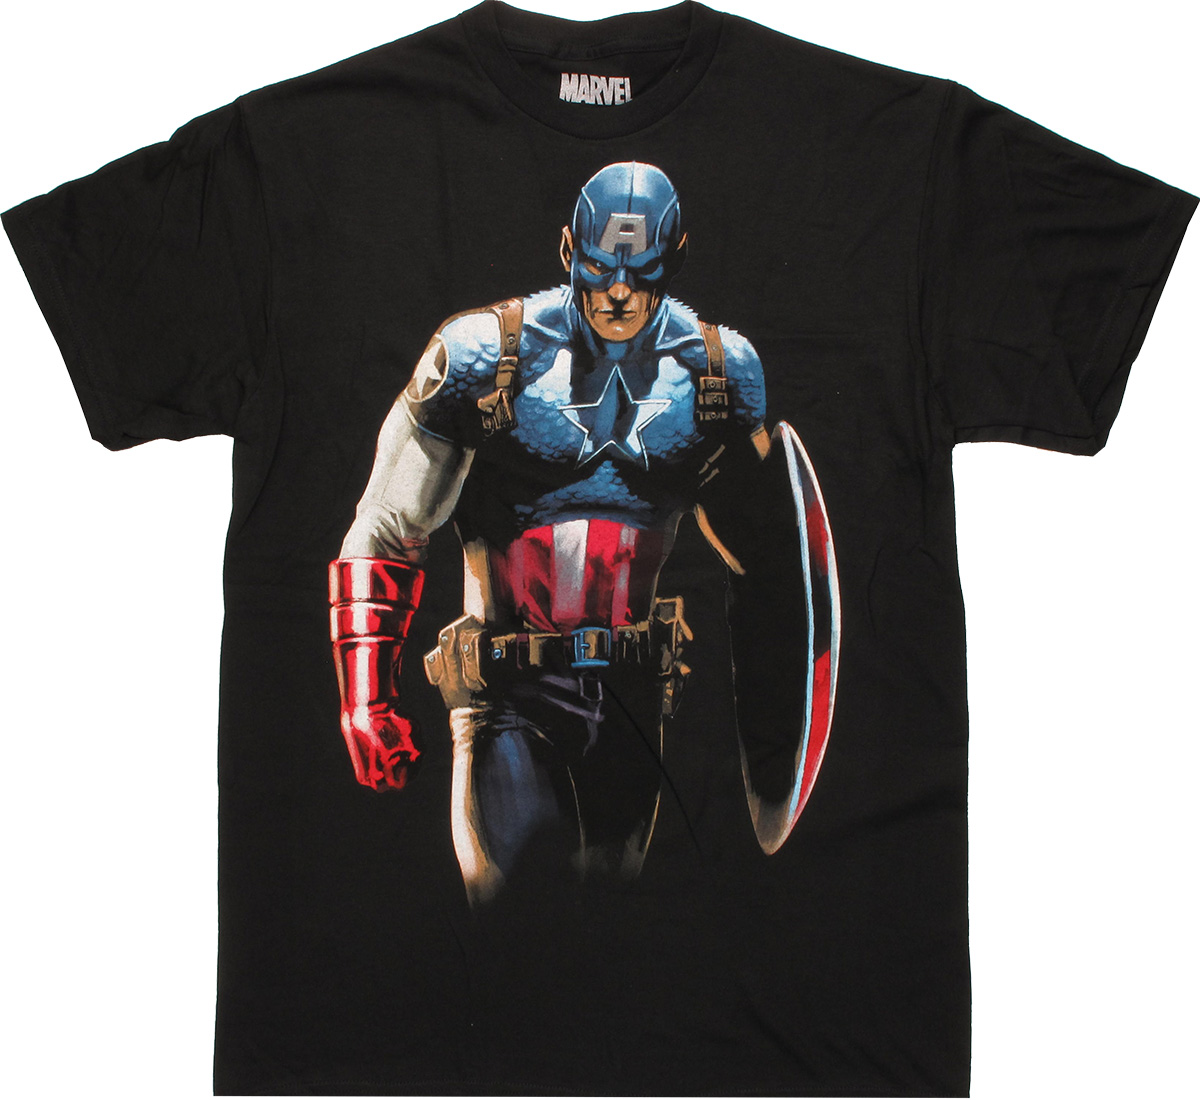 captain america glare t shirt. Black Bedroom Furniture Sets. Home Design Ideas